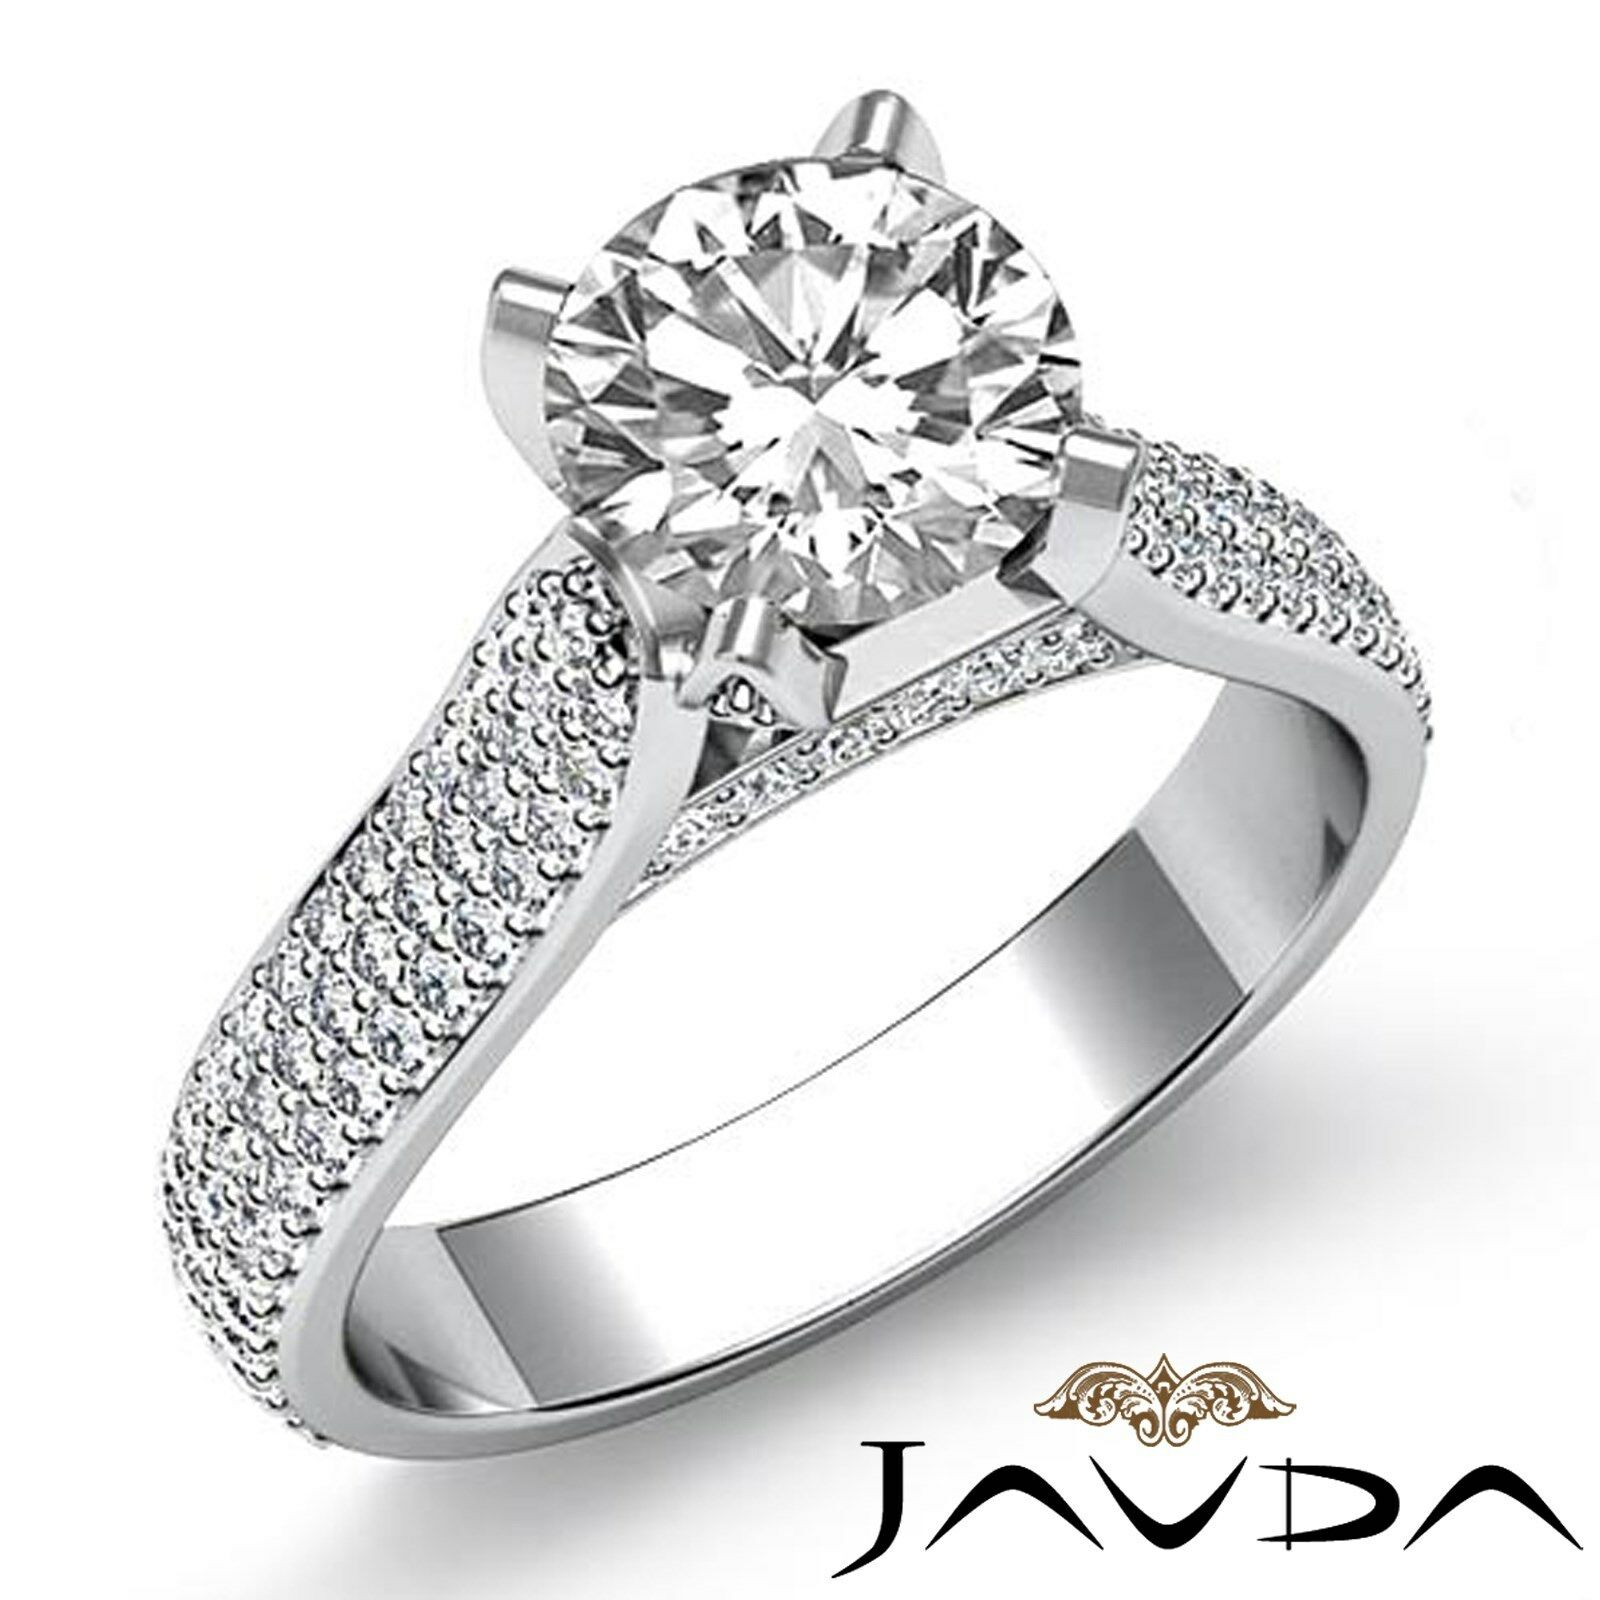 Cathedral Micro Pave Setting Round Cut Diamond Engagement Ring GIA F VS1 2.95Ct